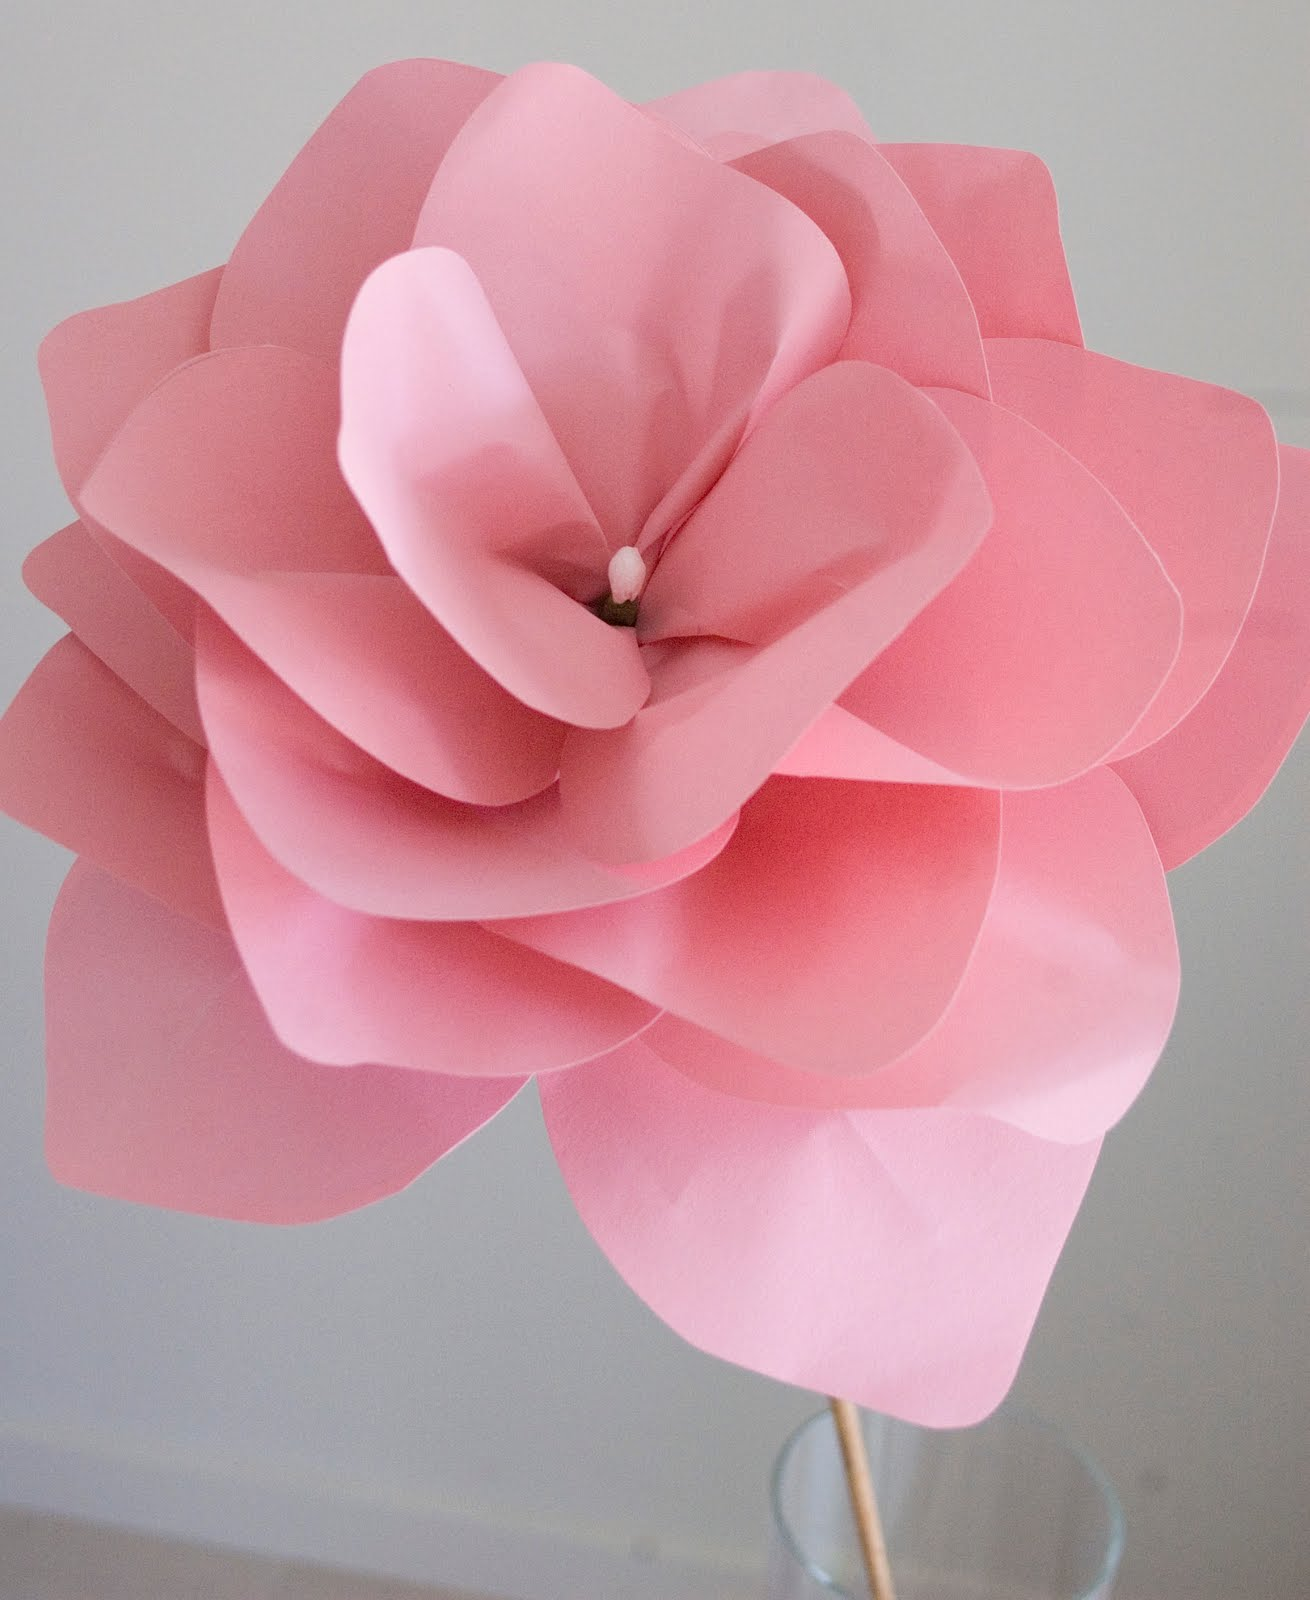 grace designs paper flowers